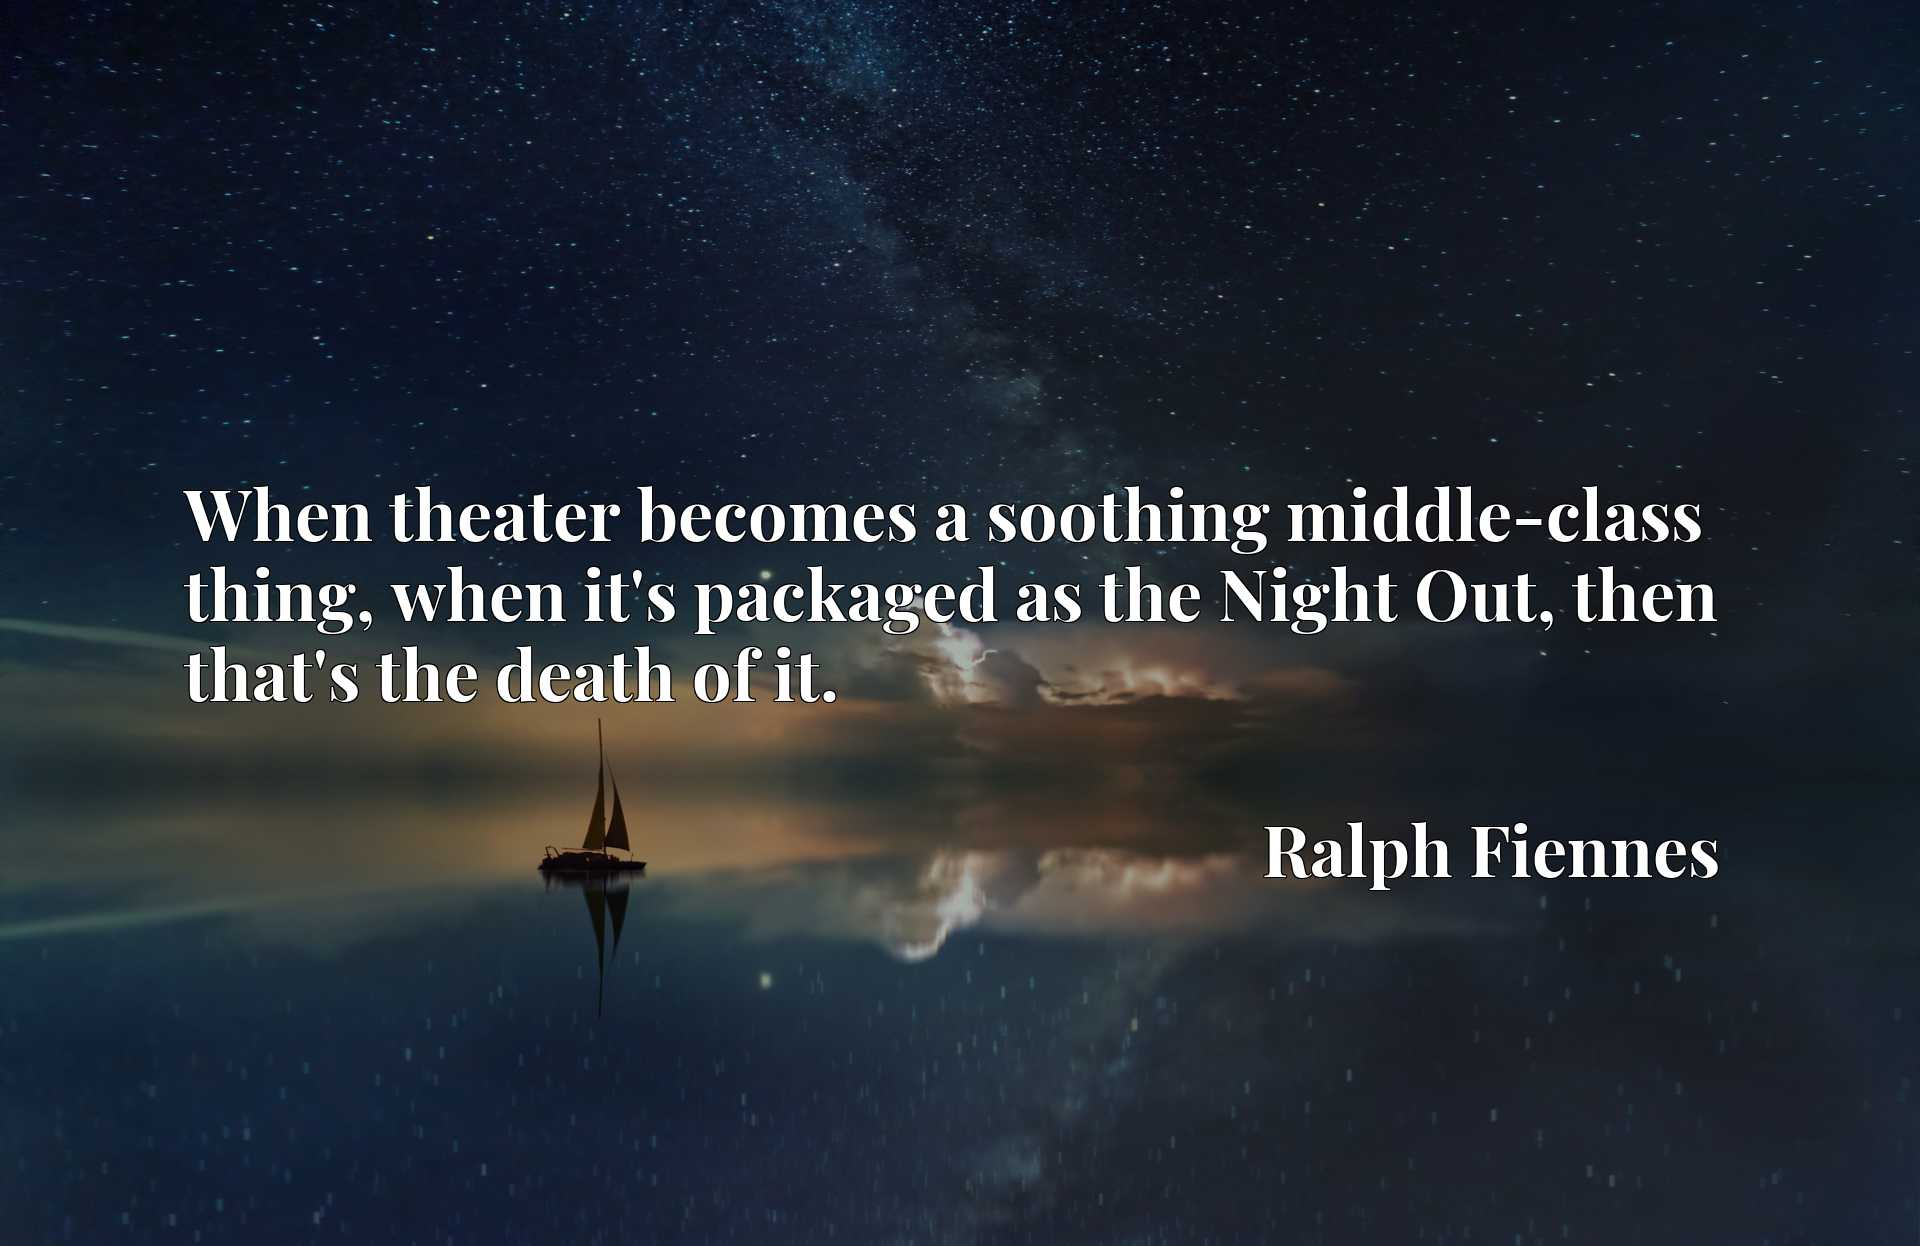 When theater becomes a soothing middle-class thing, when it's packaged as the Night Out, then that's the death of it.